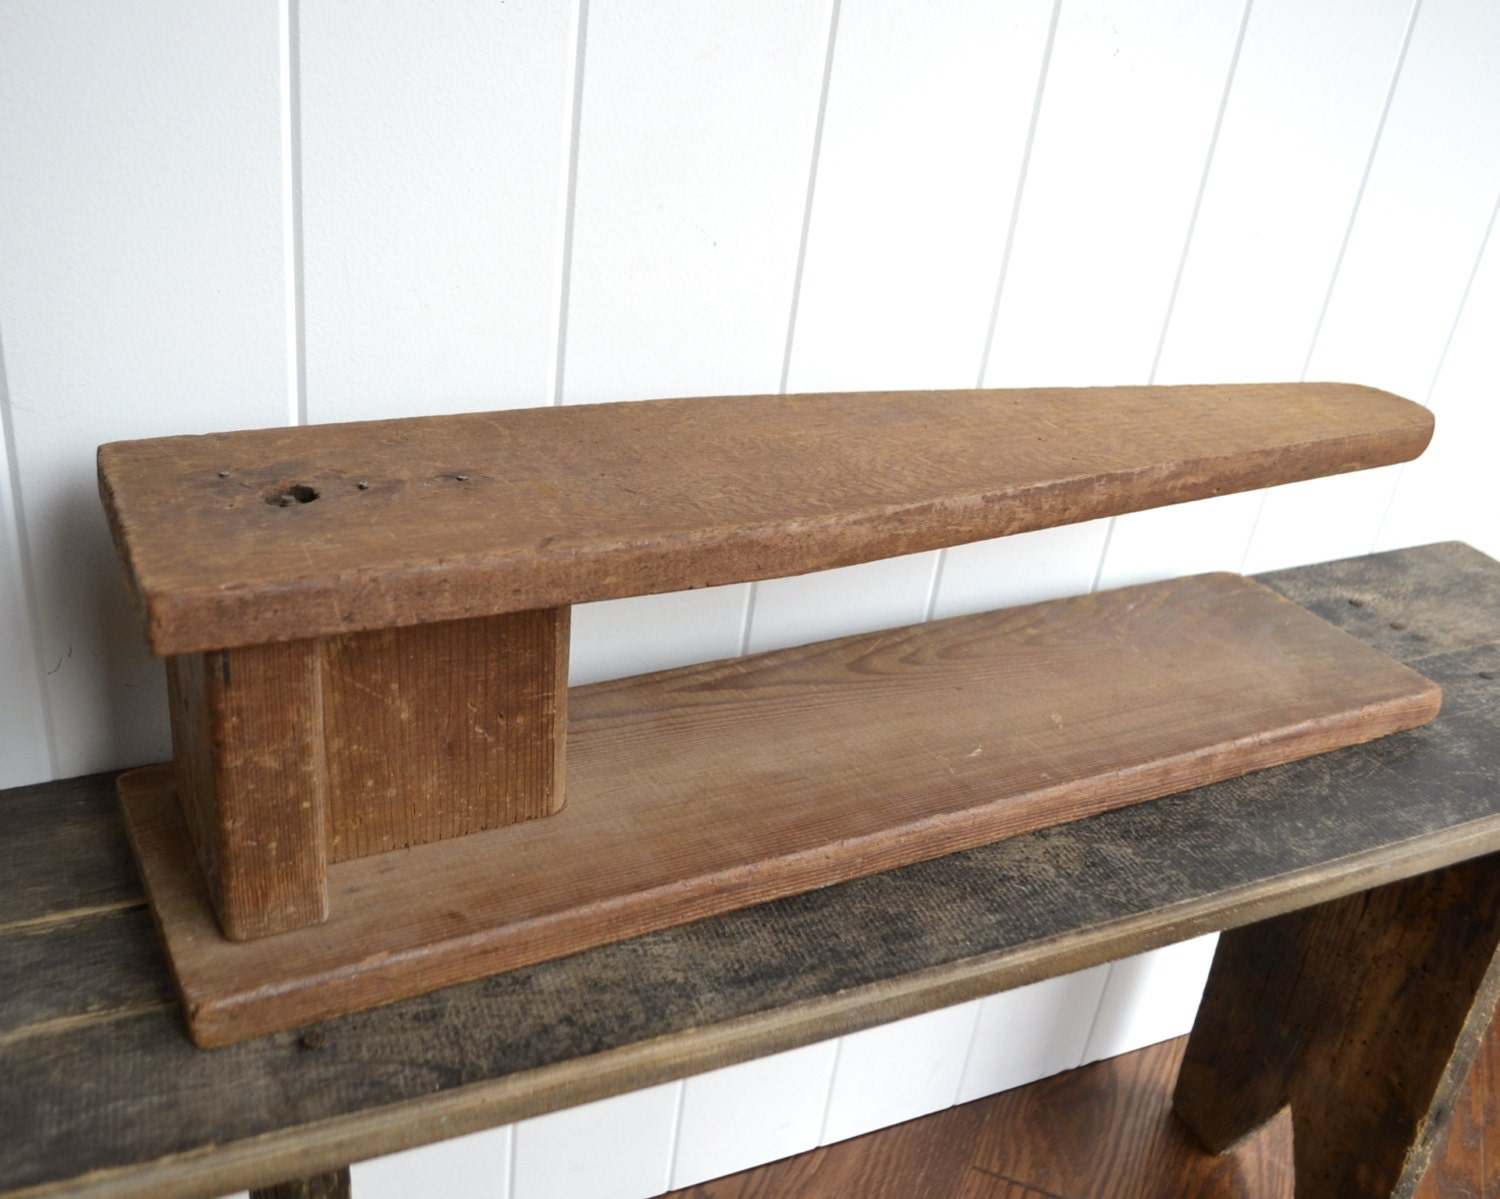 Antique Wooden Ironing Board Wood Tabletop Sleeve By